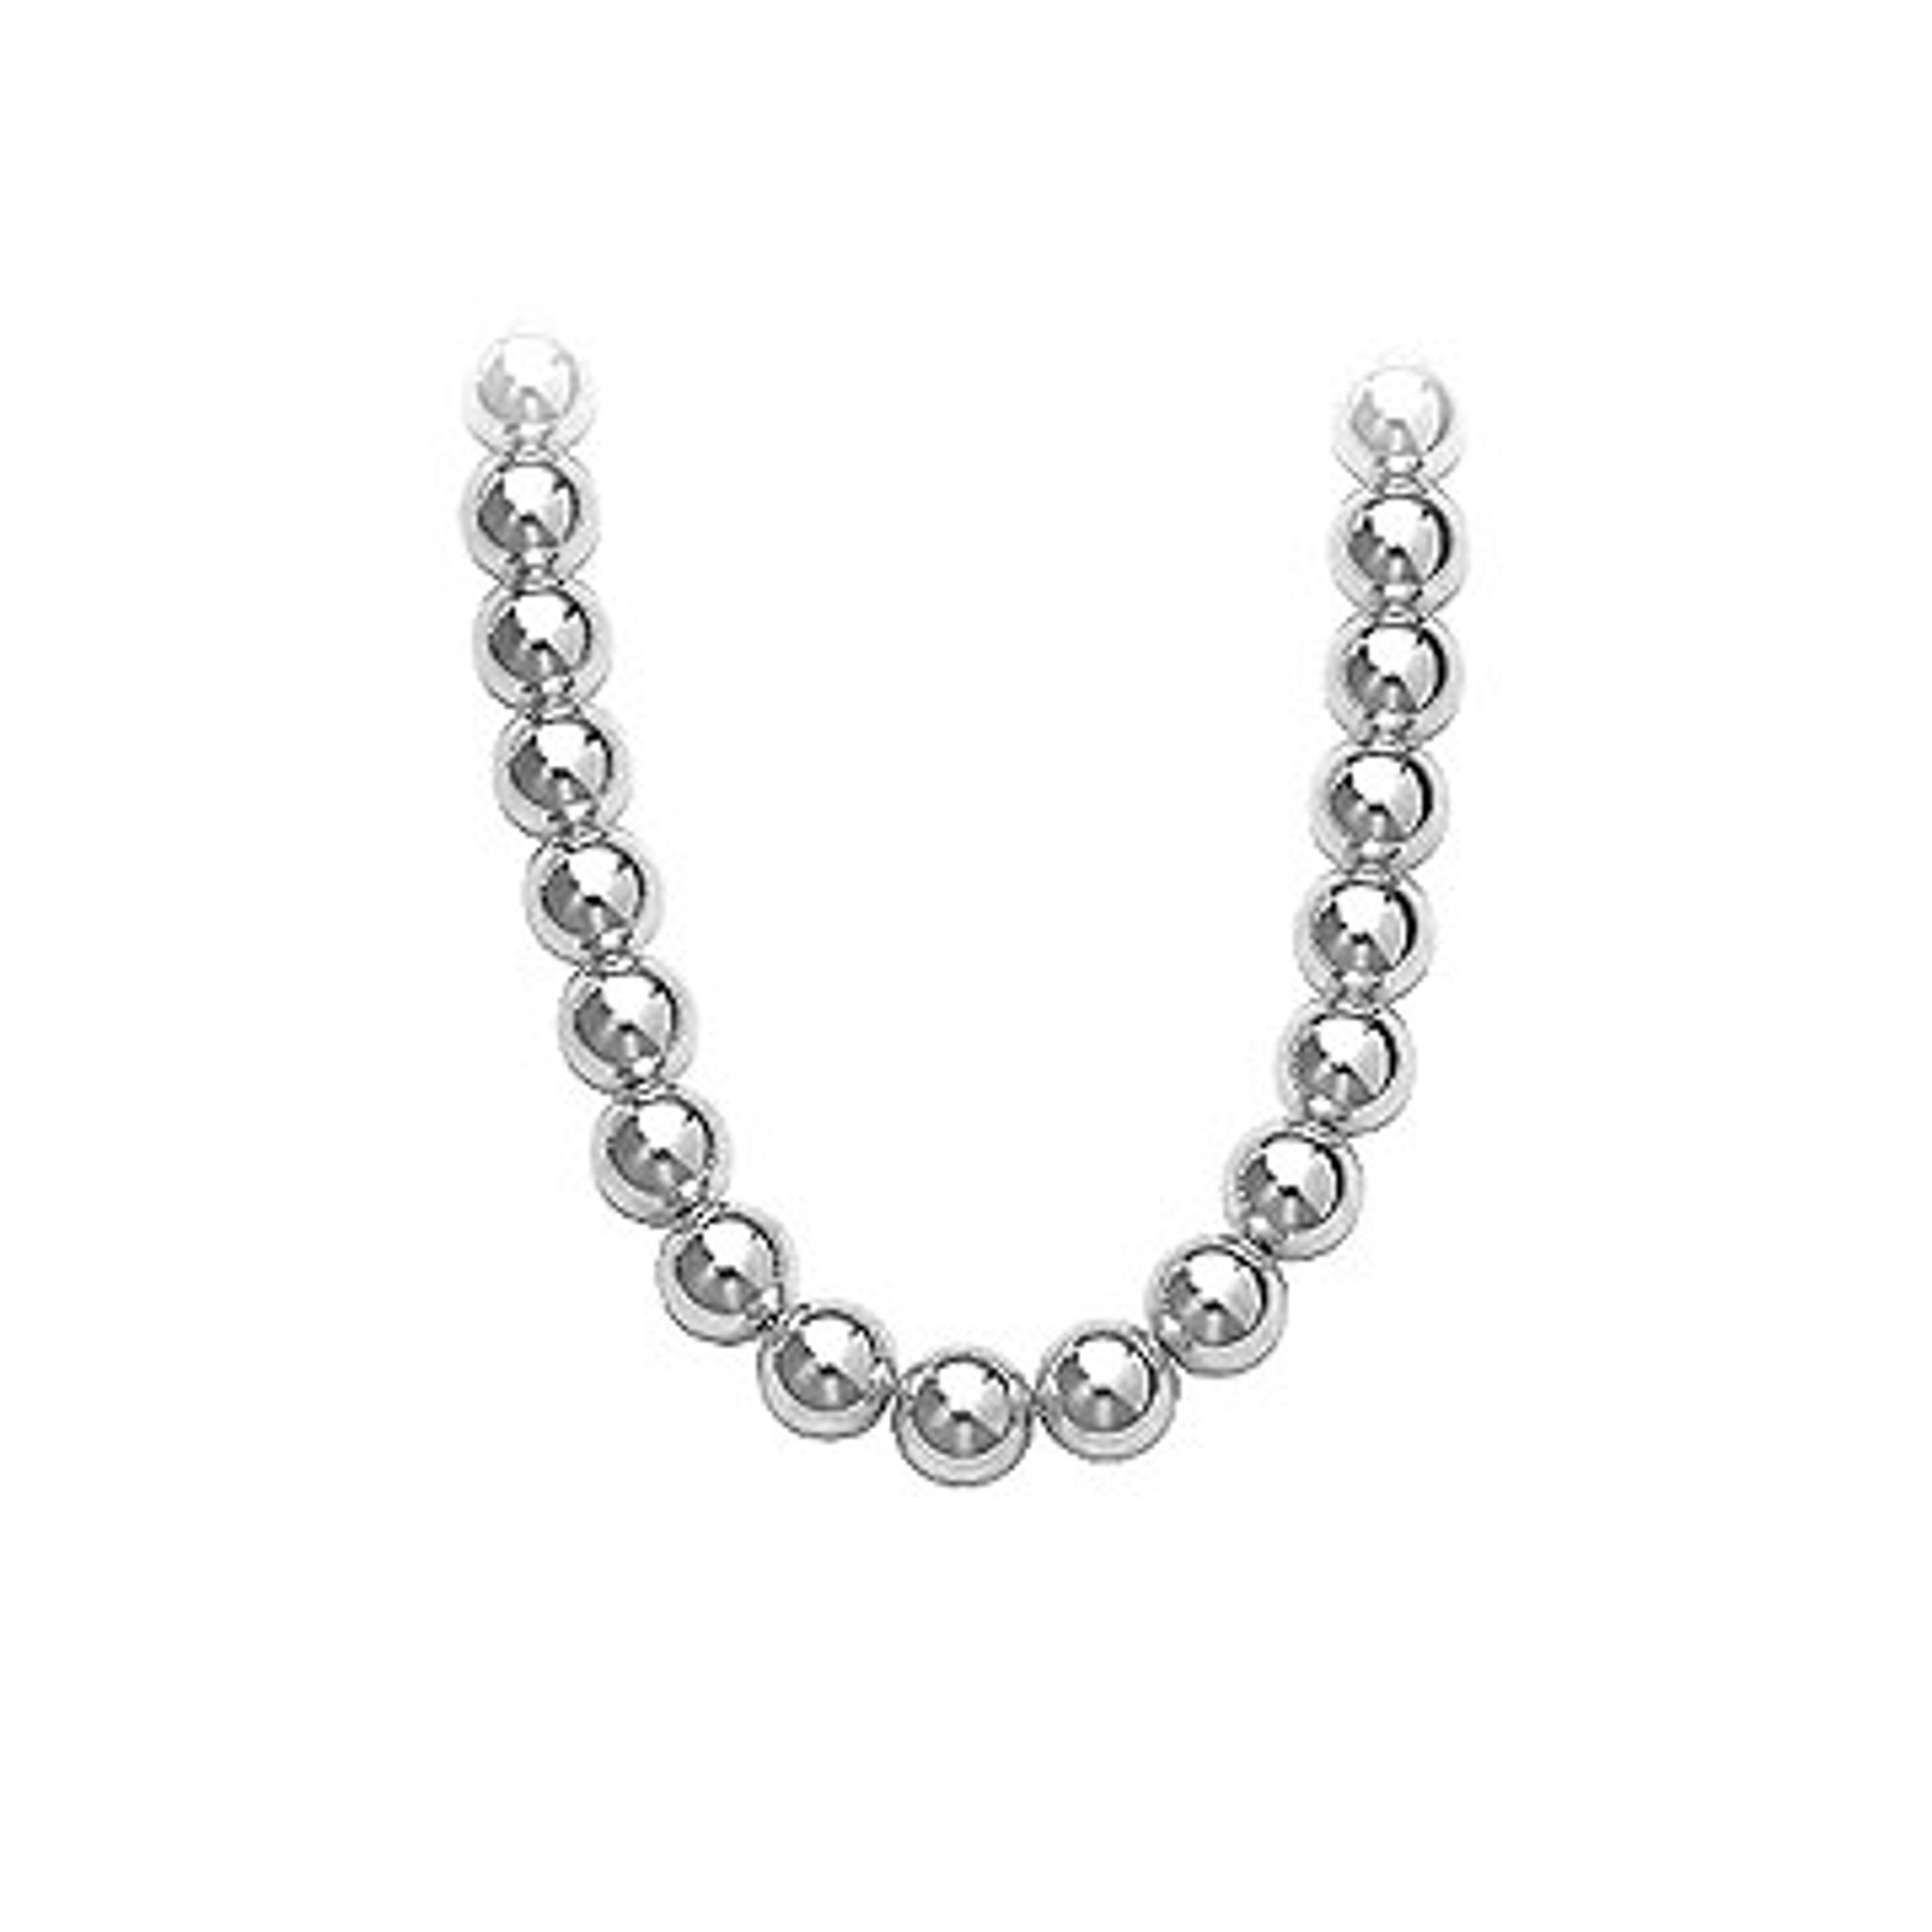 d54f9eccbc6 Gold Beads Necklace on 14K White Gold Chain with 10MM White Gold Beads